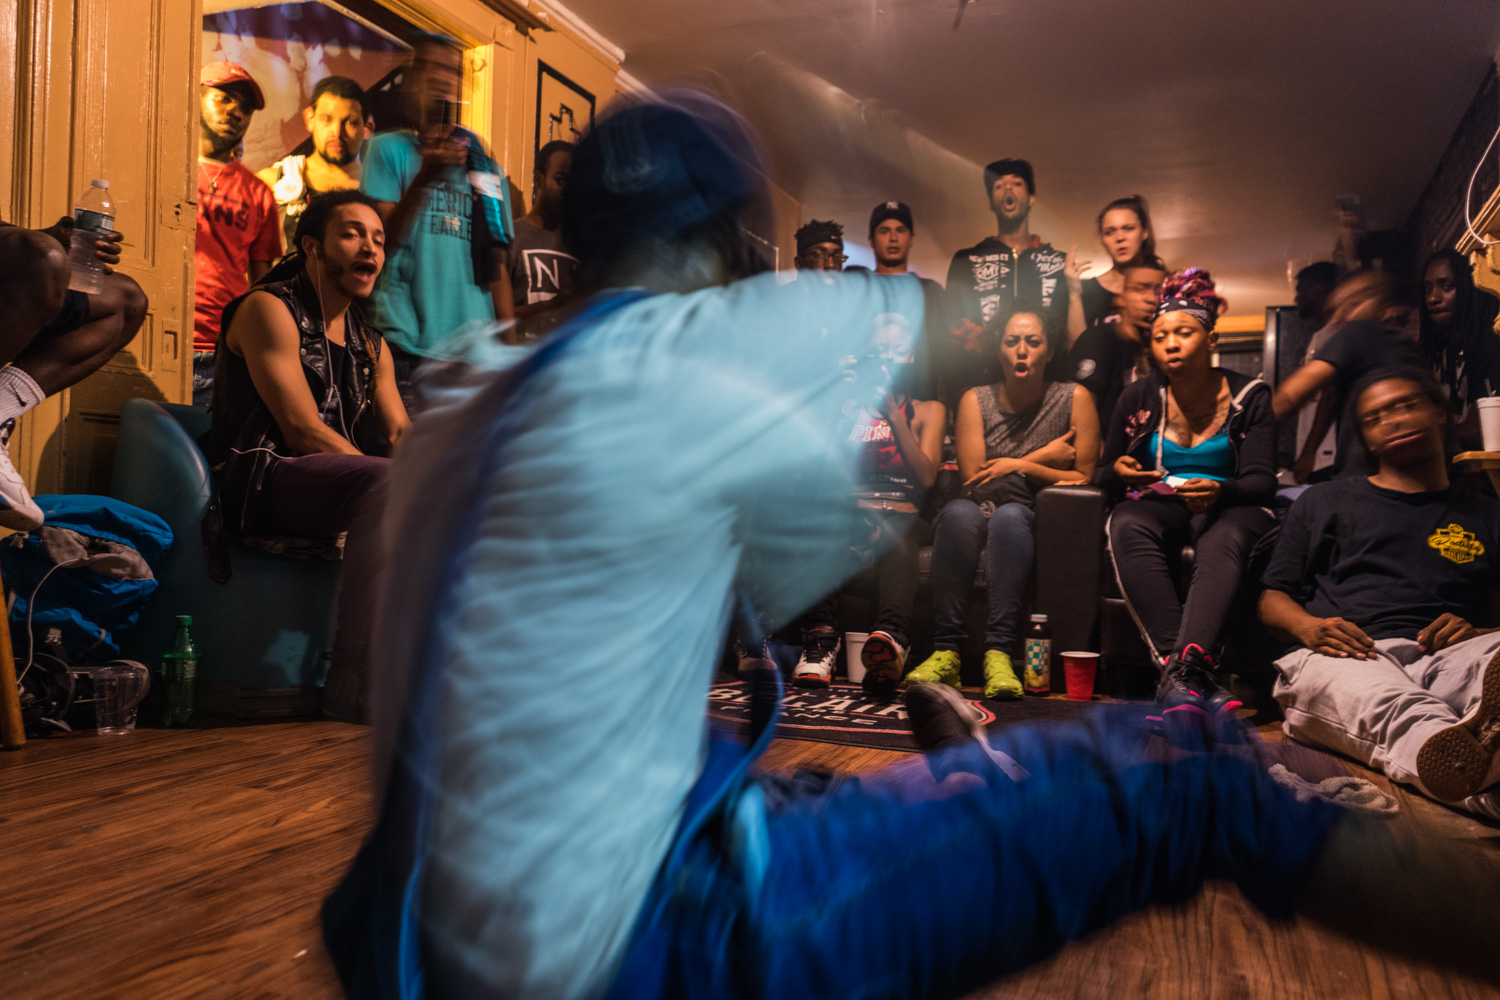 A Bruk Up dance battle where dancers take turns performing in front of the the crowd at the Slaugherhouse. The crowd decide who wins by how loud and long they shout.